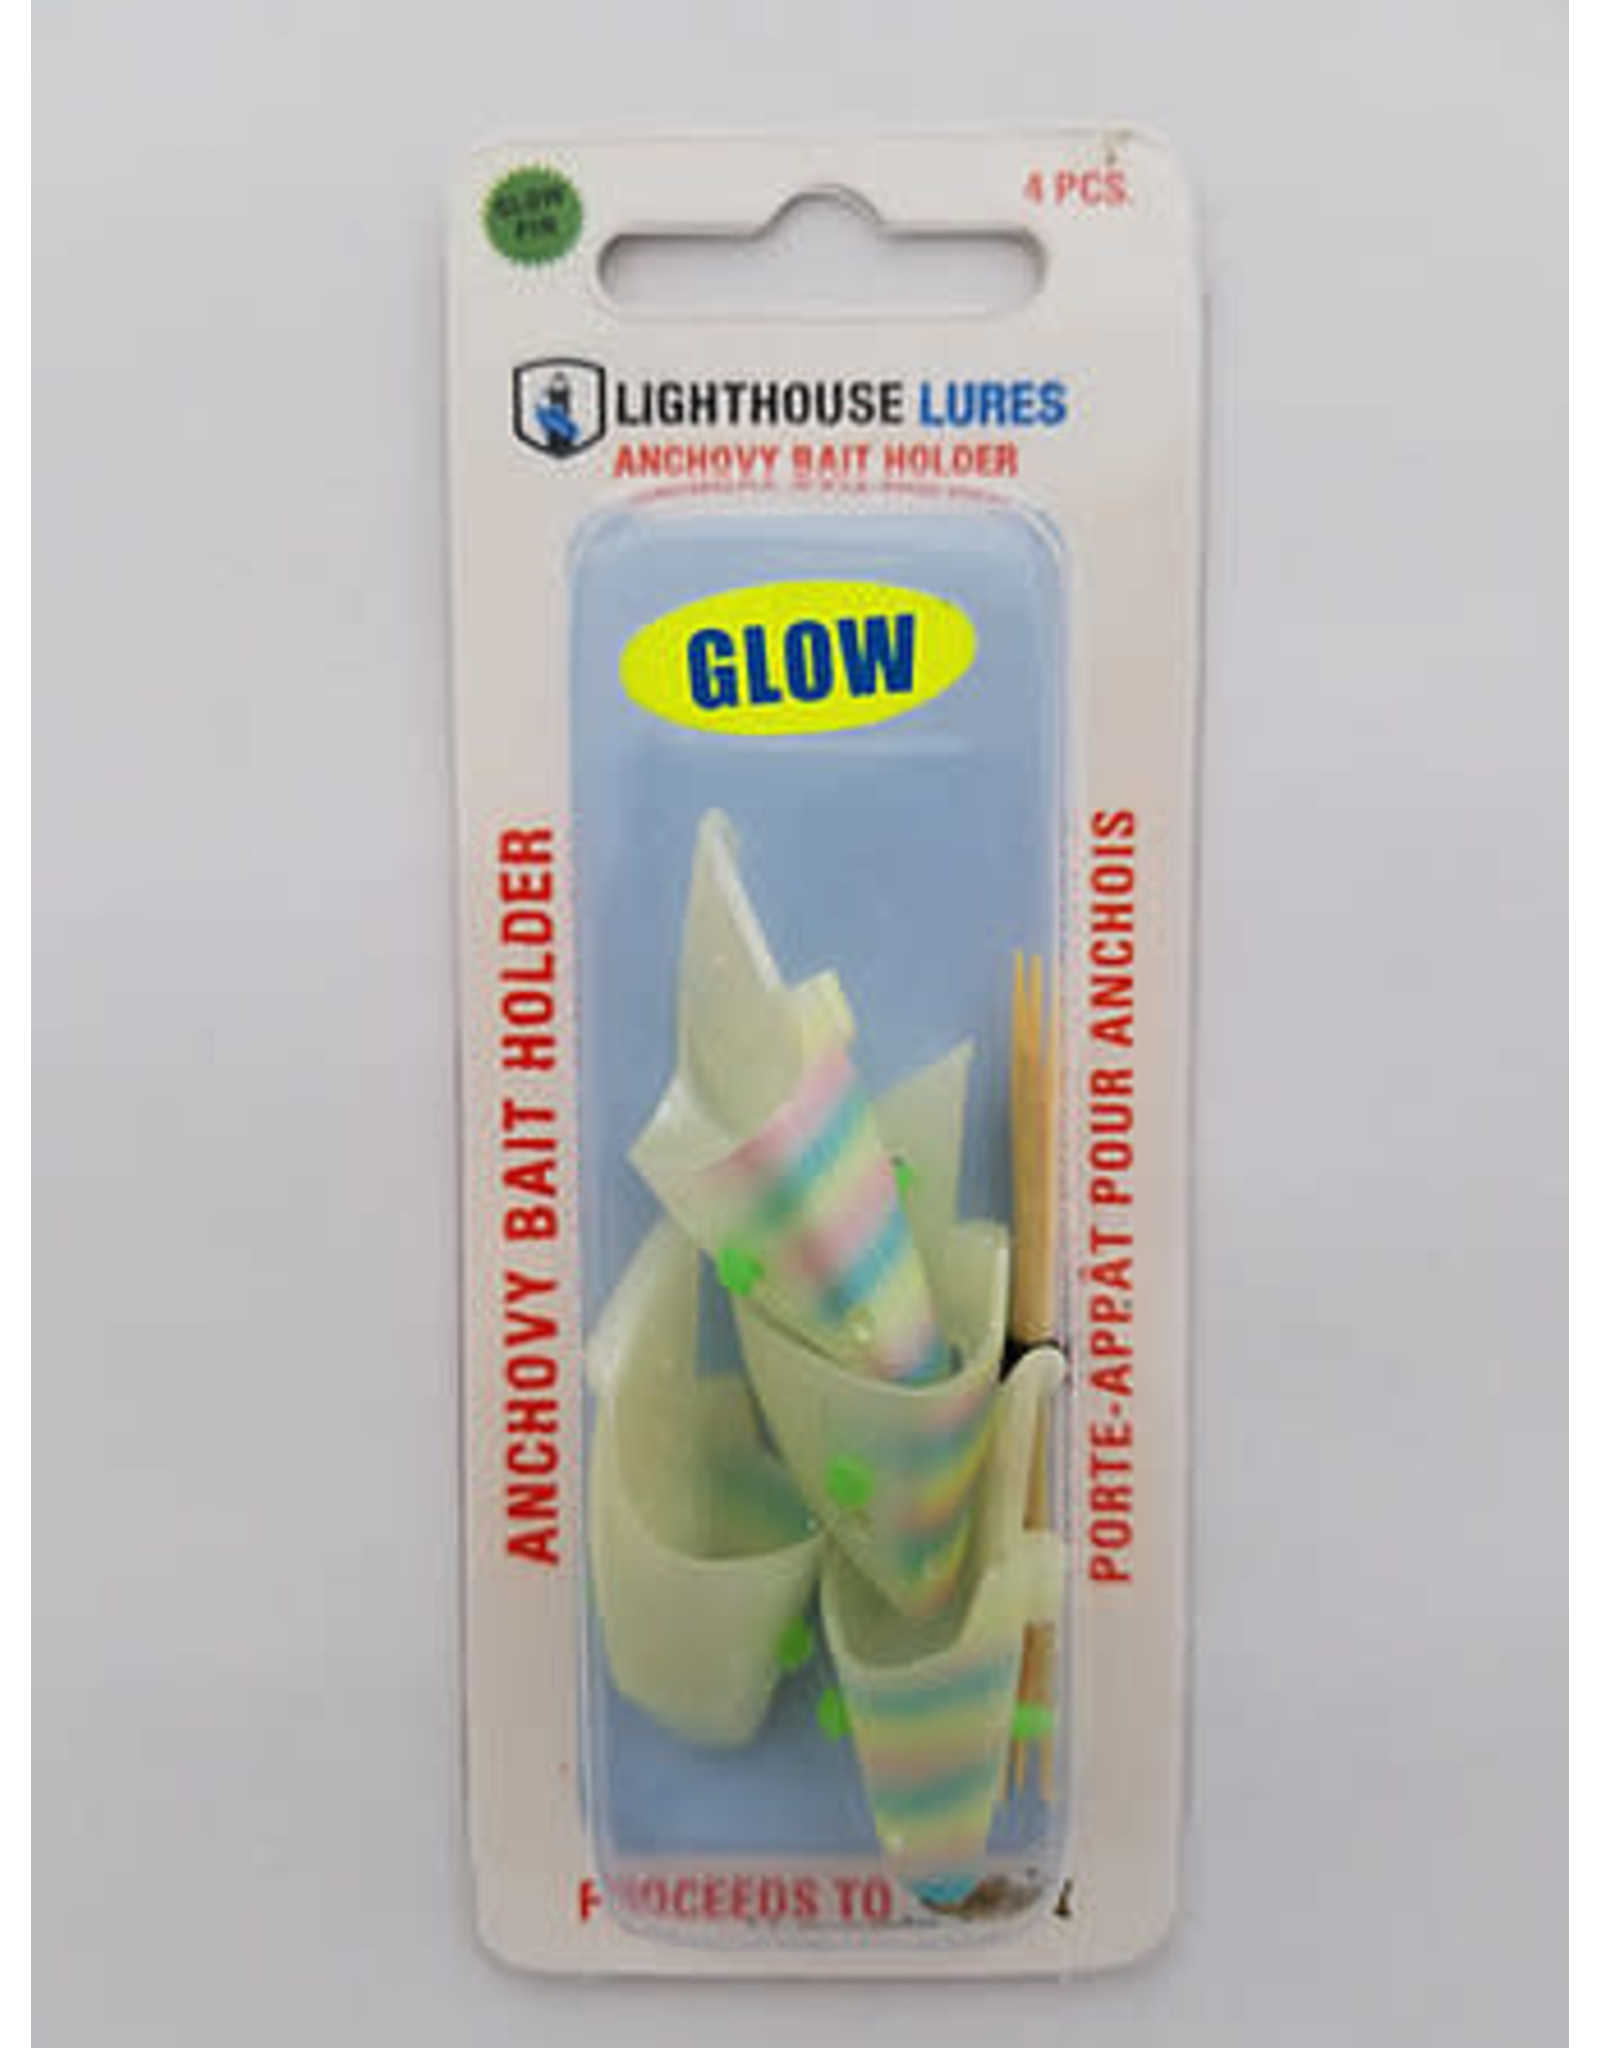 LIGHTHOUSE LURES LIGHTHOUSE ANCHOVY BAIT HOLDER 4 PK